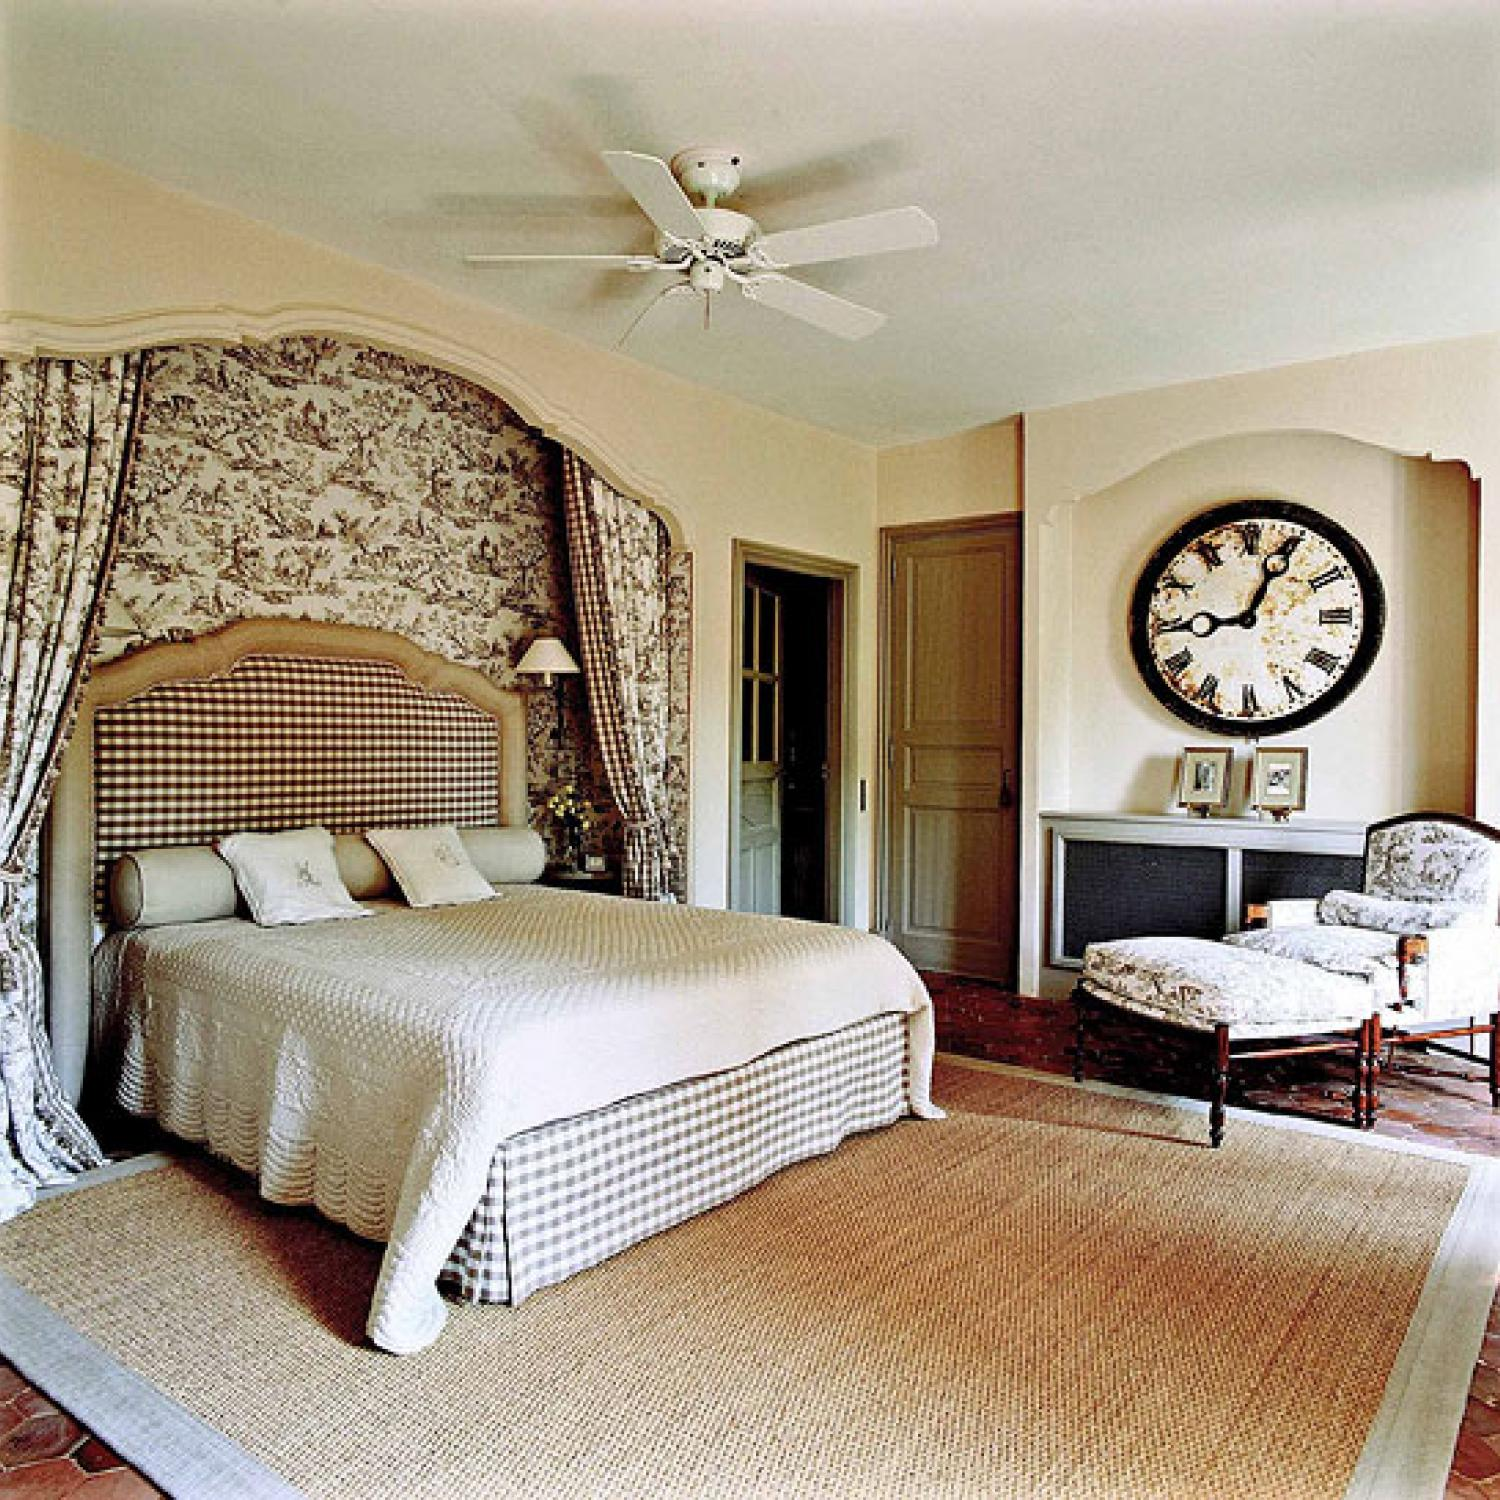 25 Bedroom Design Ideas For Your Home: Bedroom Decorating Ideas: Totally Toile